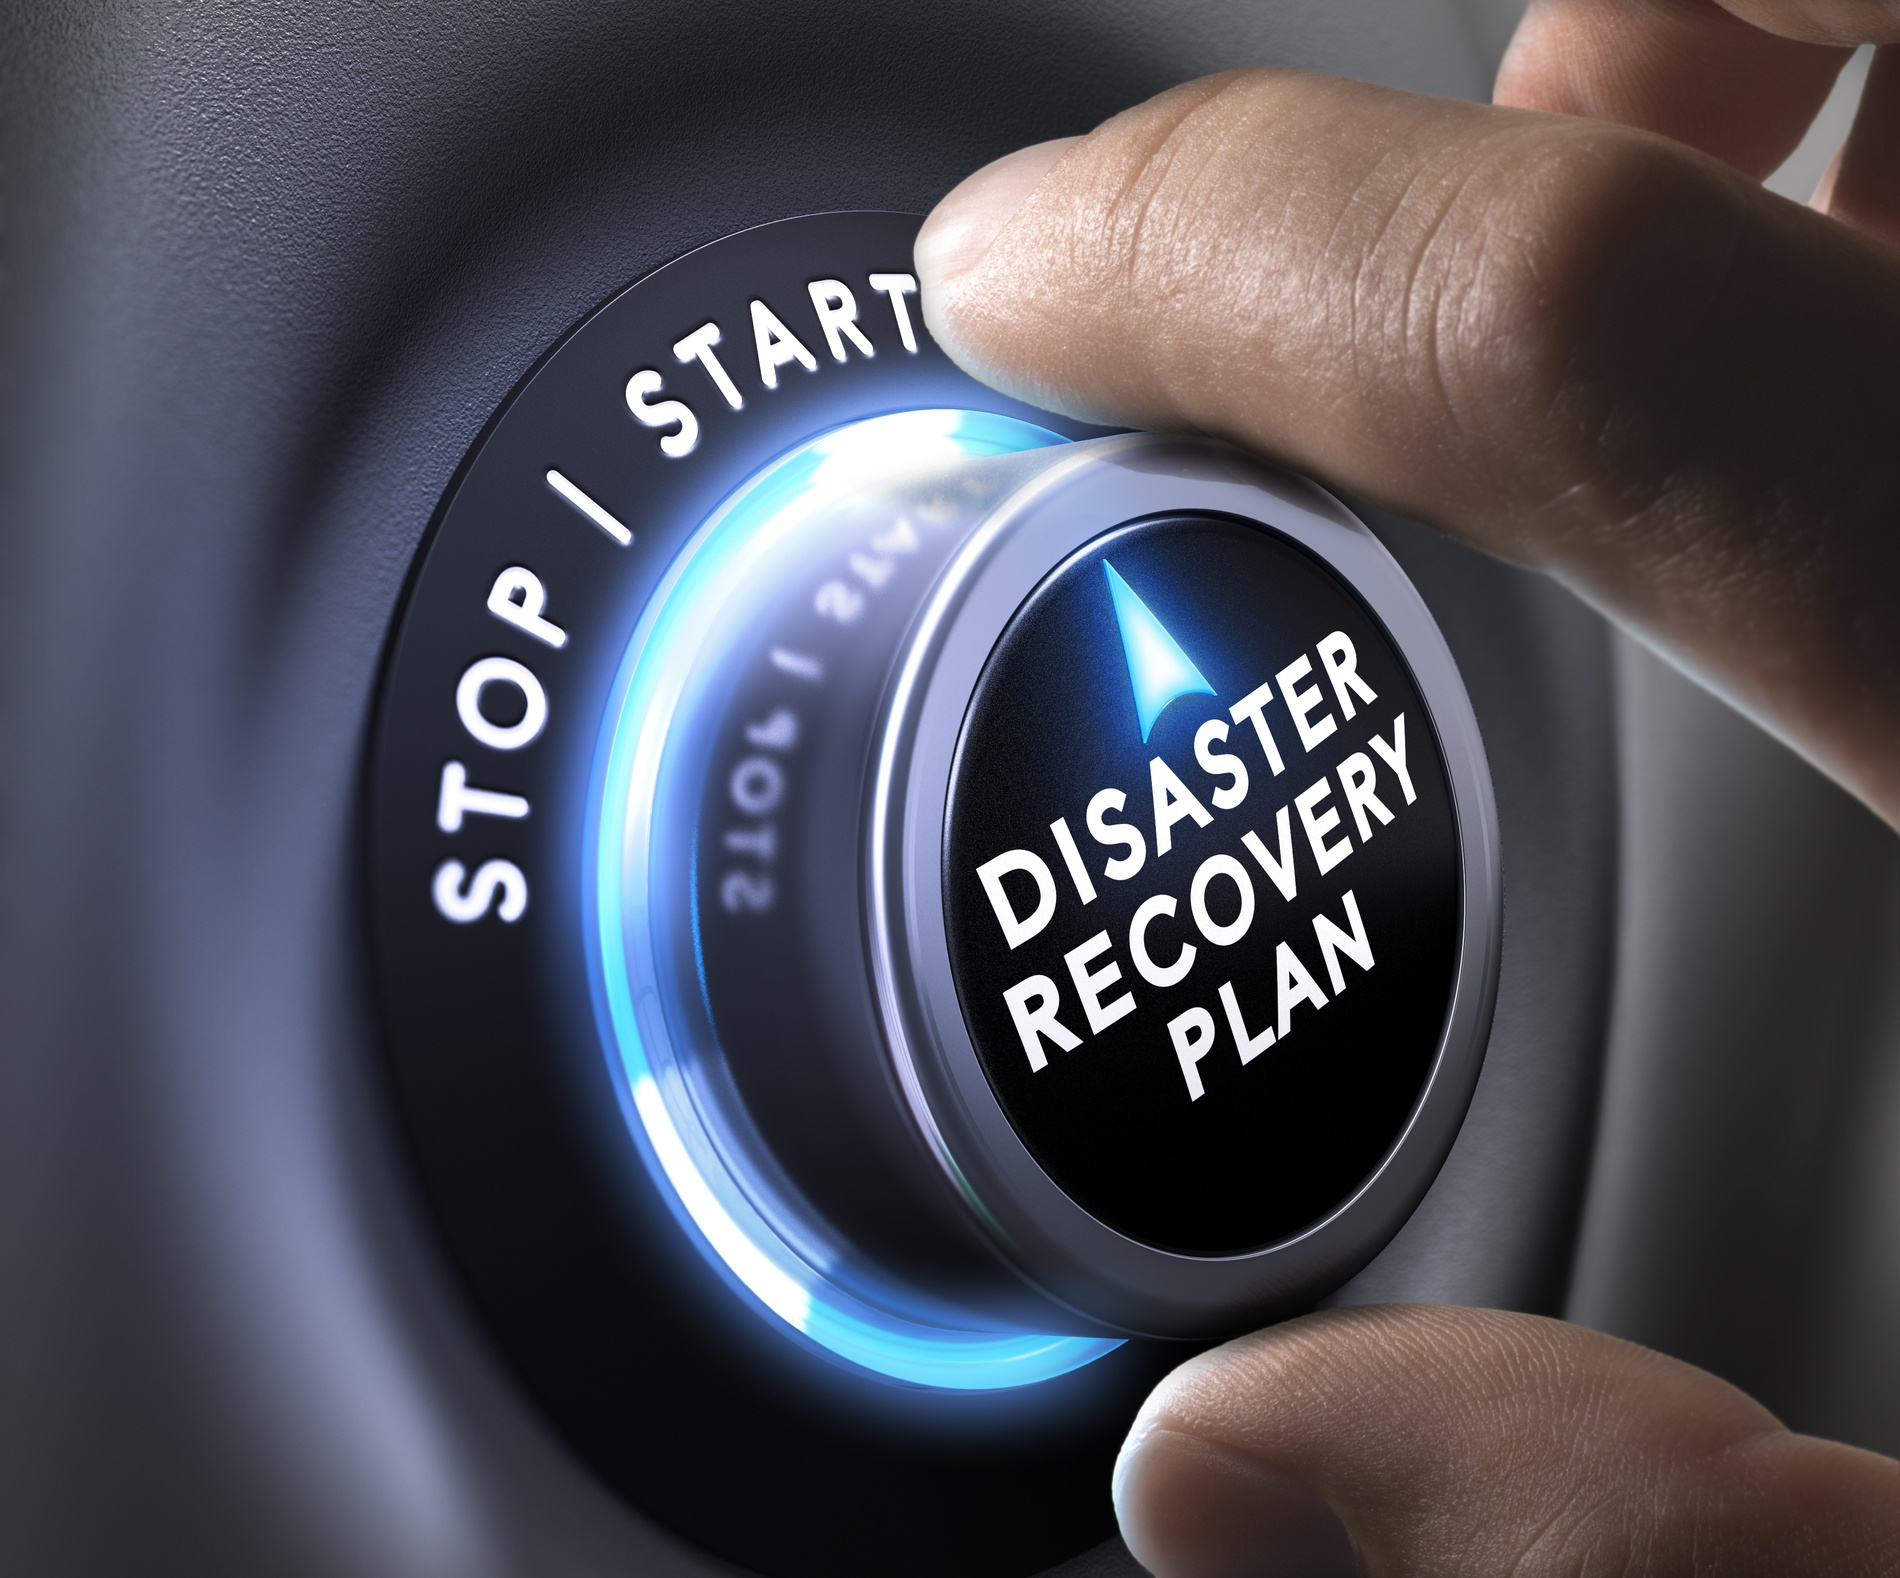 Disaster Recovery: How Long Can Your Company Survive Without Being Able to Operate?